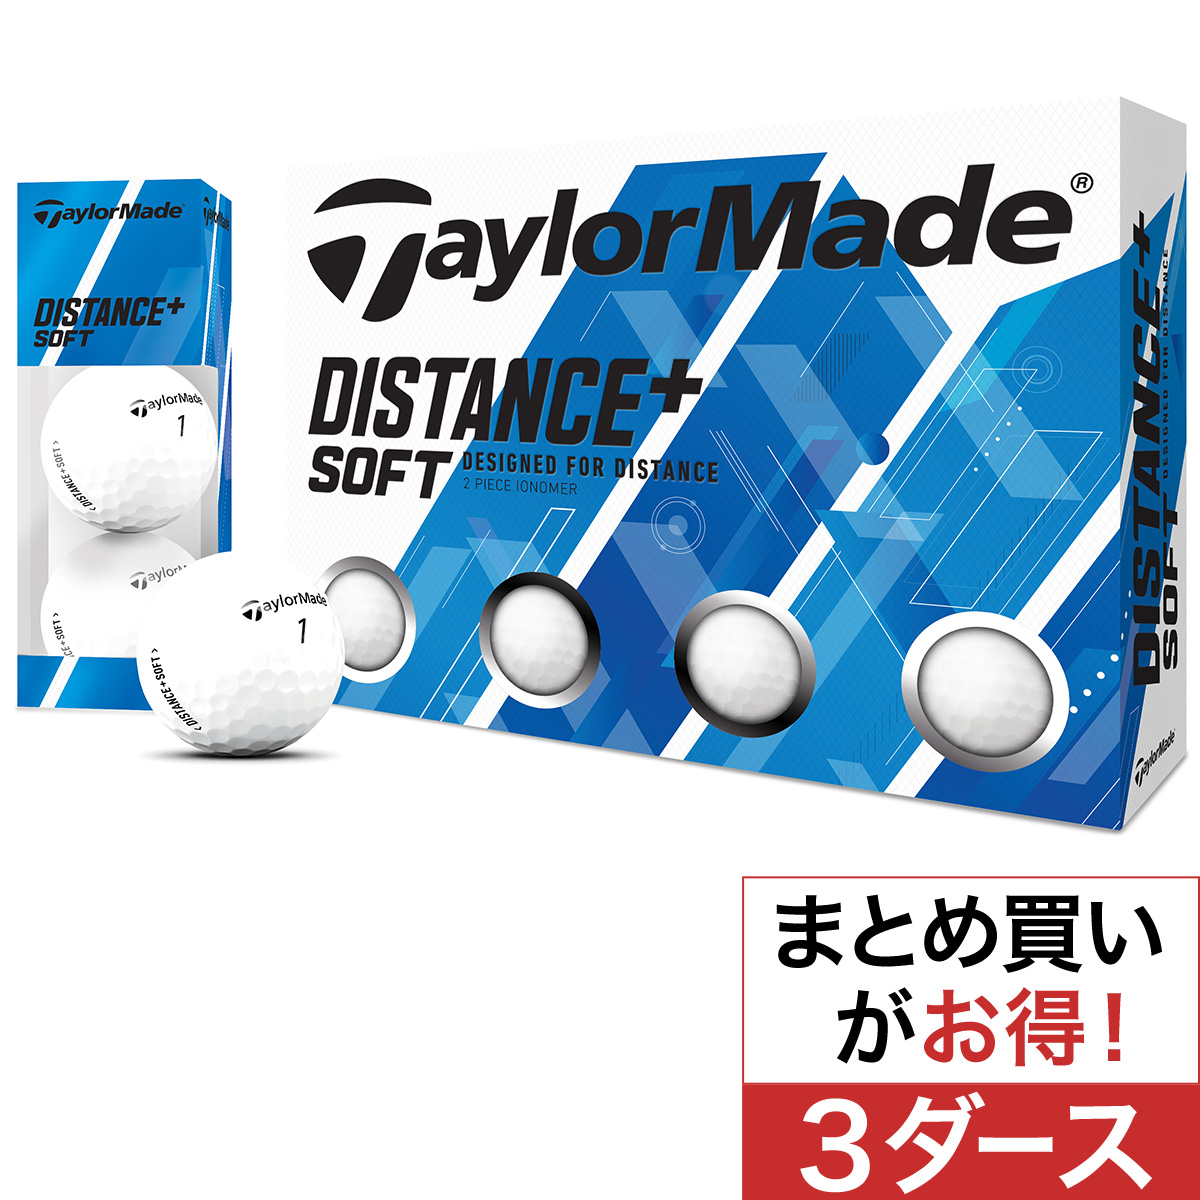 Distance+Soft ボール 3ダースセット